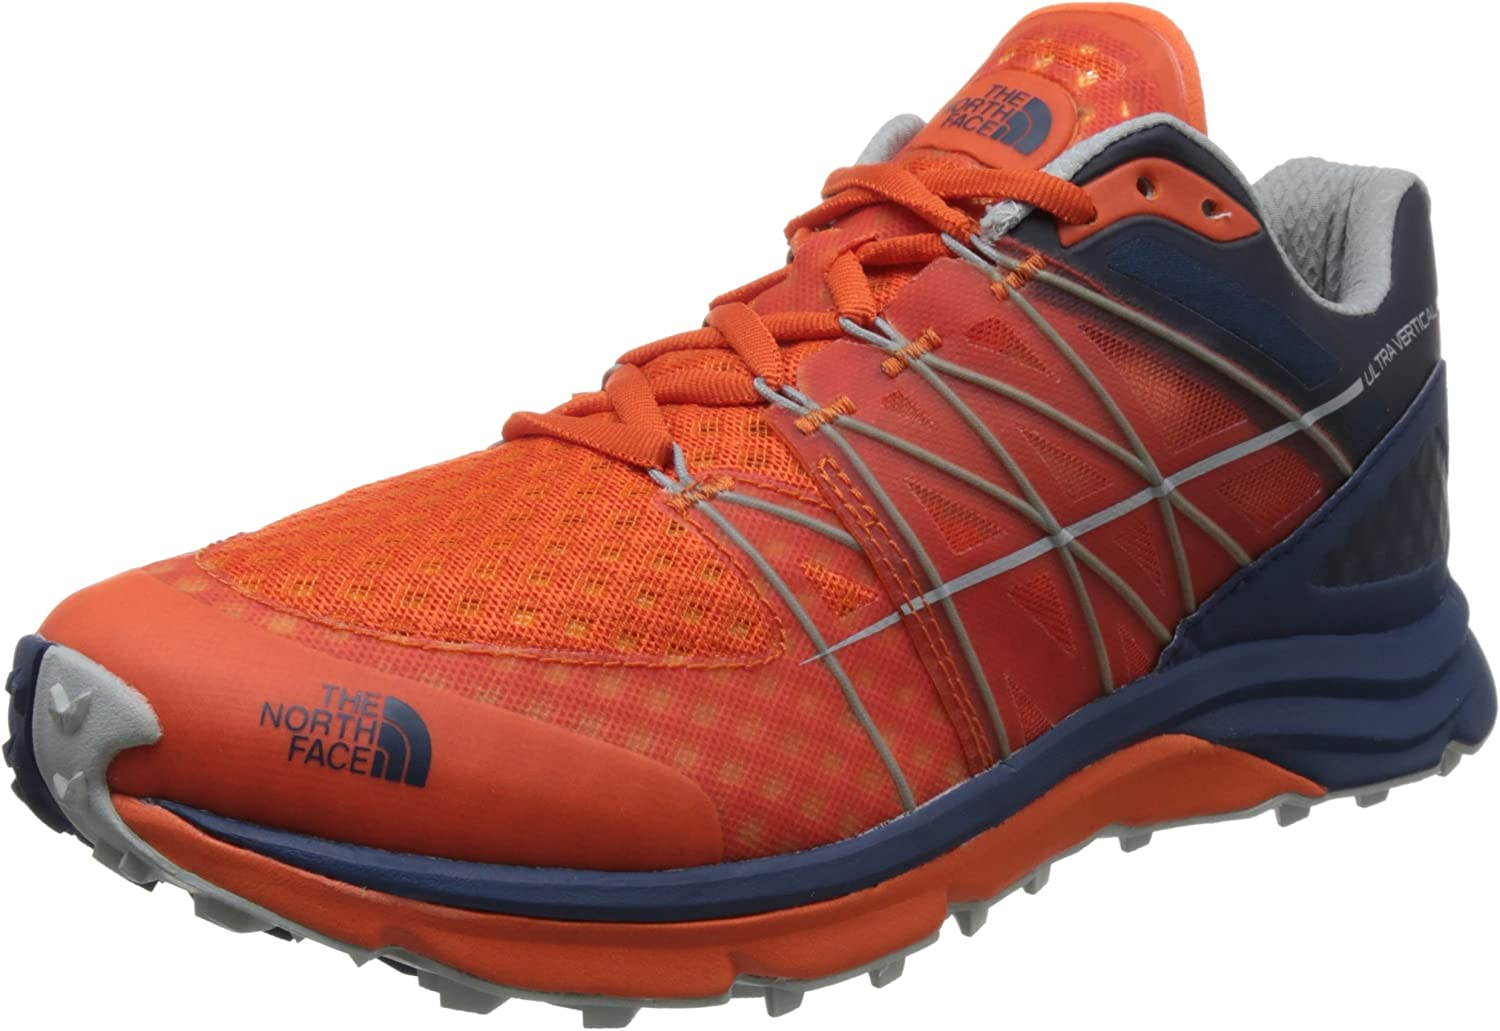 29f626258 THE NORTH FACE Men's M M M Ultra greenical Fitness shoes f11f66 ...